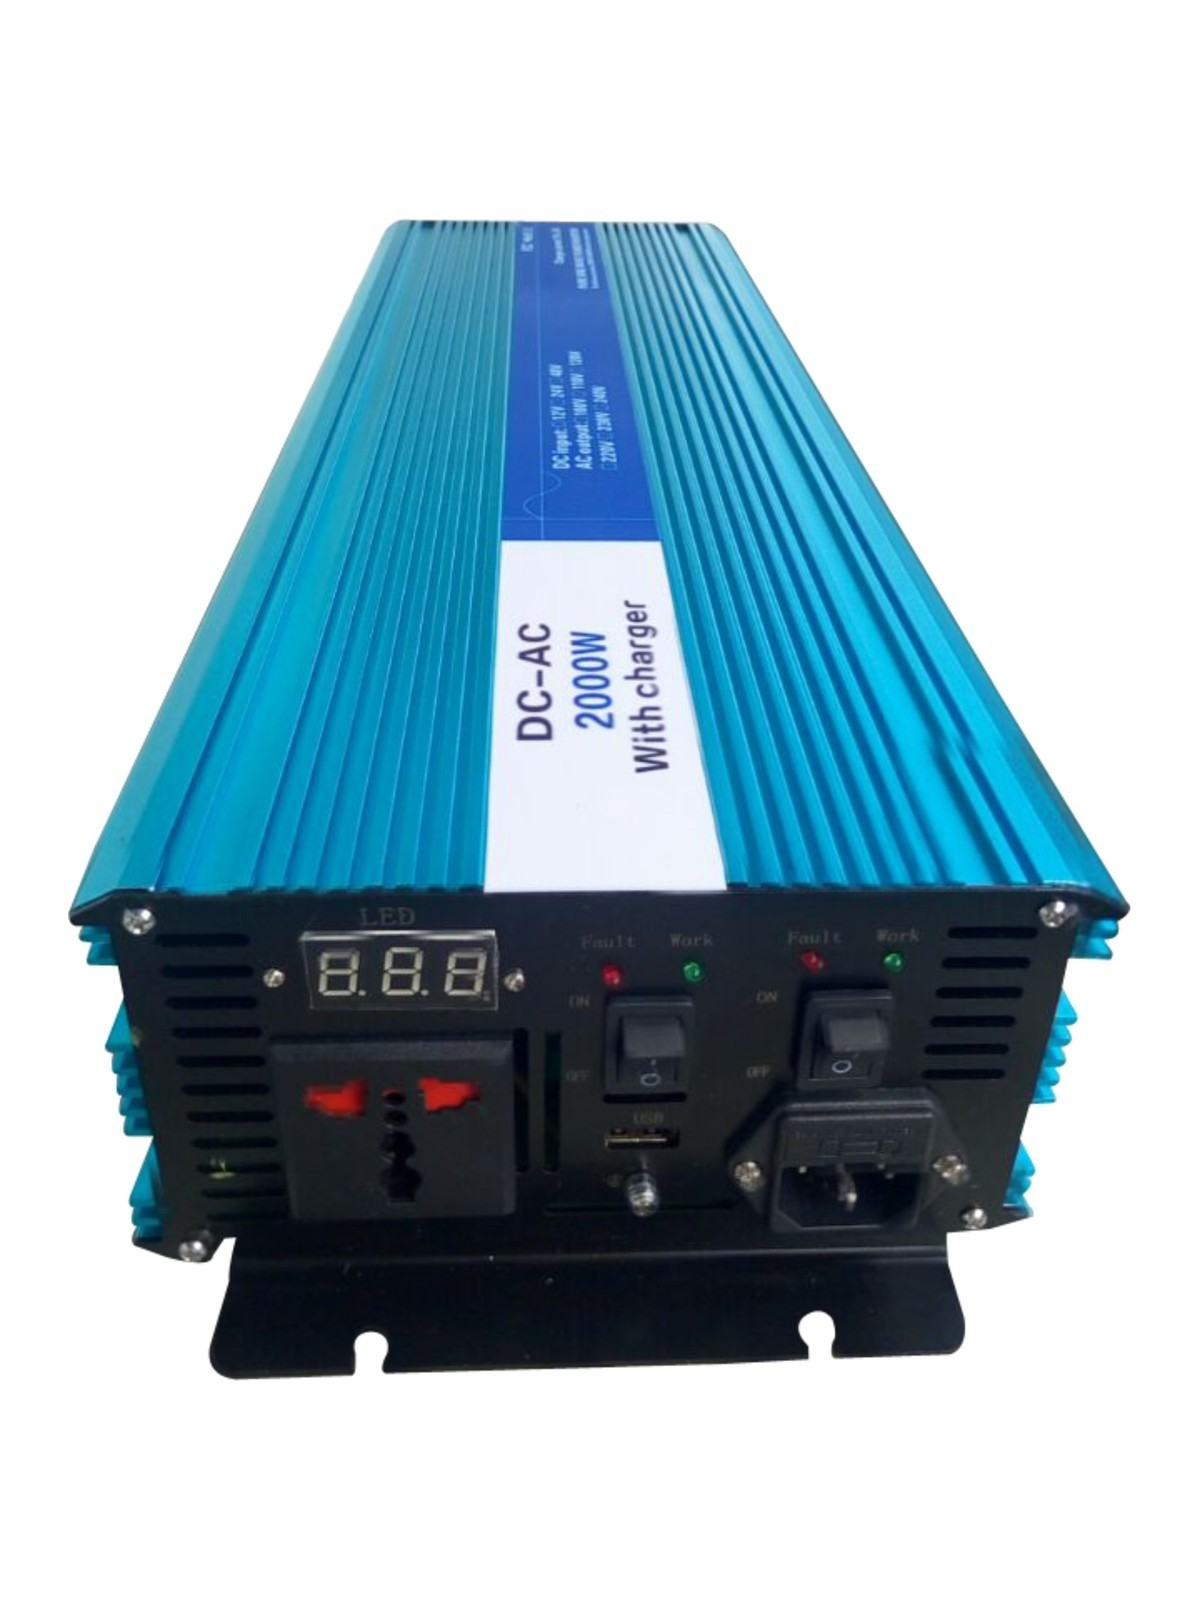 Full Power 2000W Pure Sine Wave Inverter,DC 12V/24V/48V To AC 110V/220V,off Grid Solar Inverter With Battery Charger And UPS full power 2000w modified sine wave inverter dc 12v 24v 48v to ac110v 220v off grid solar inverter with battery charger and ups